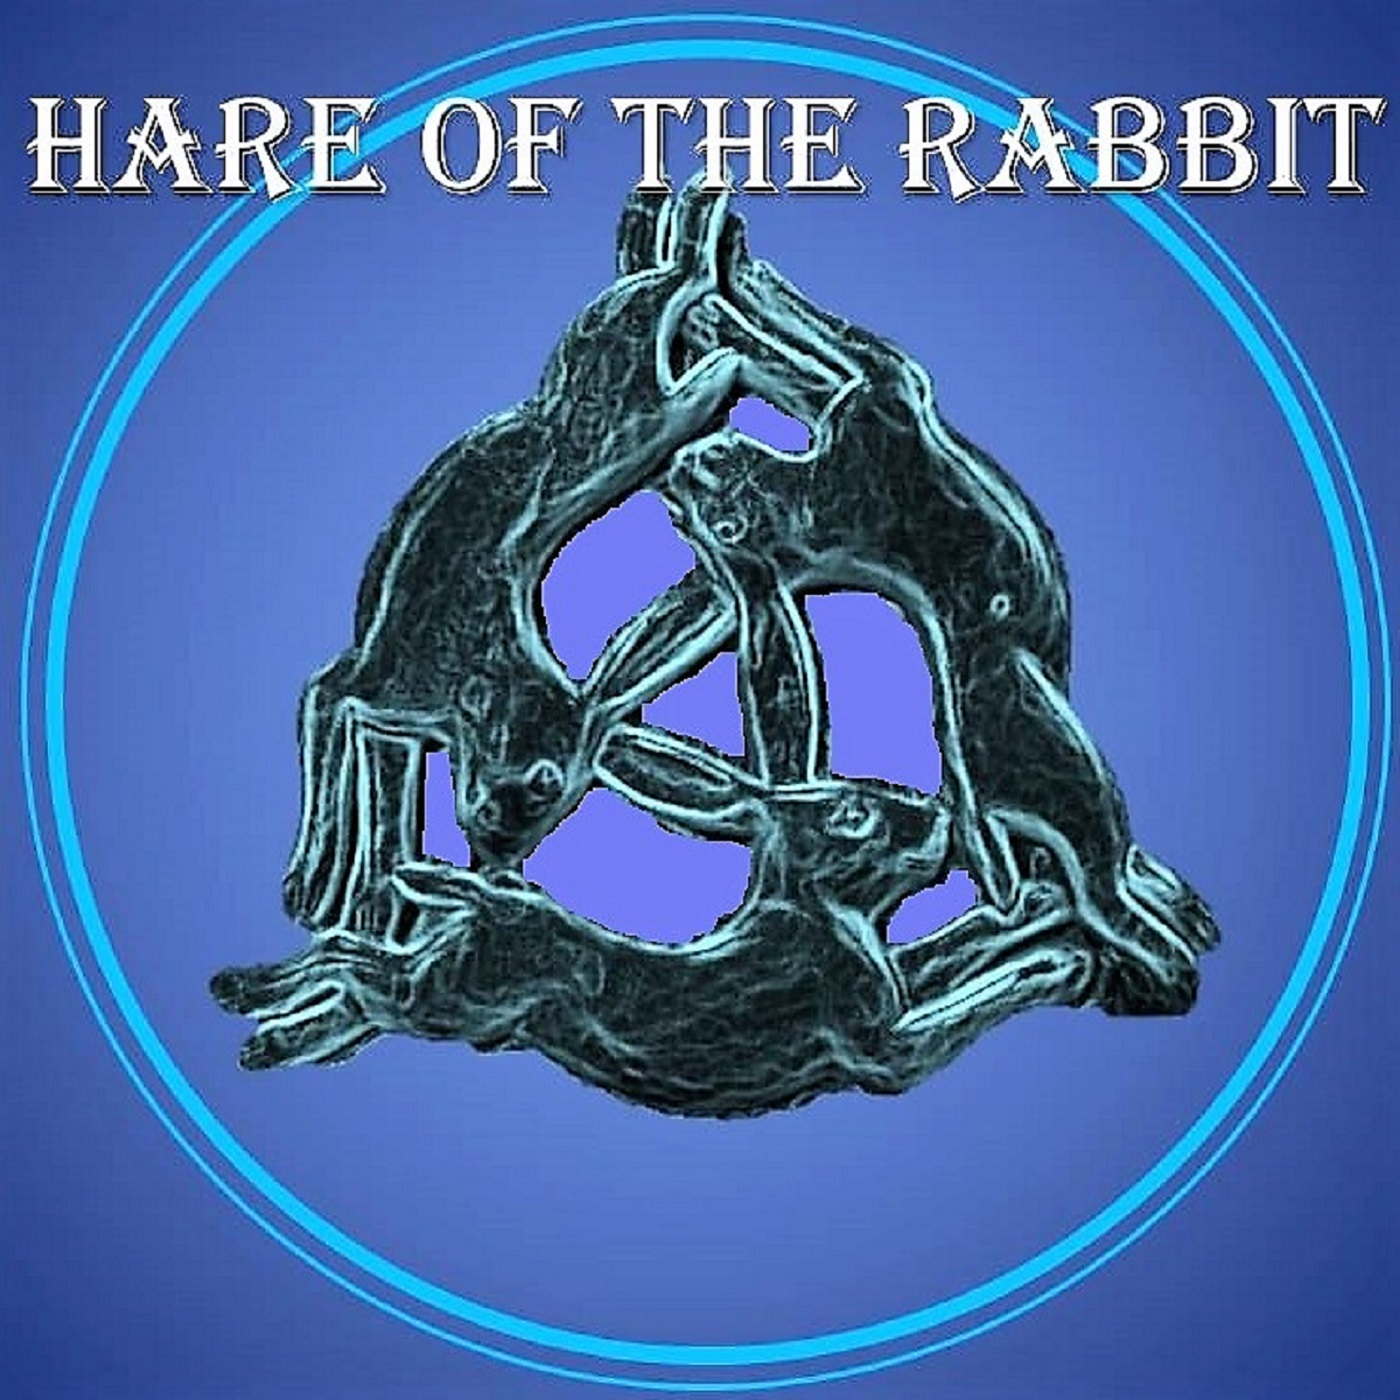 best service 59c38 0ae31 Hare of the rabbit podcast